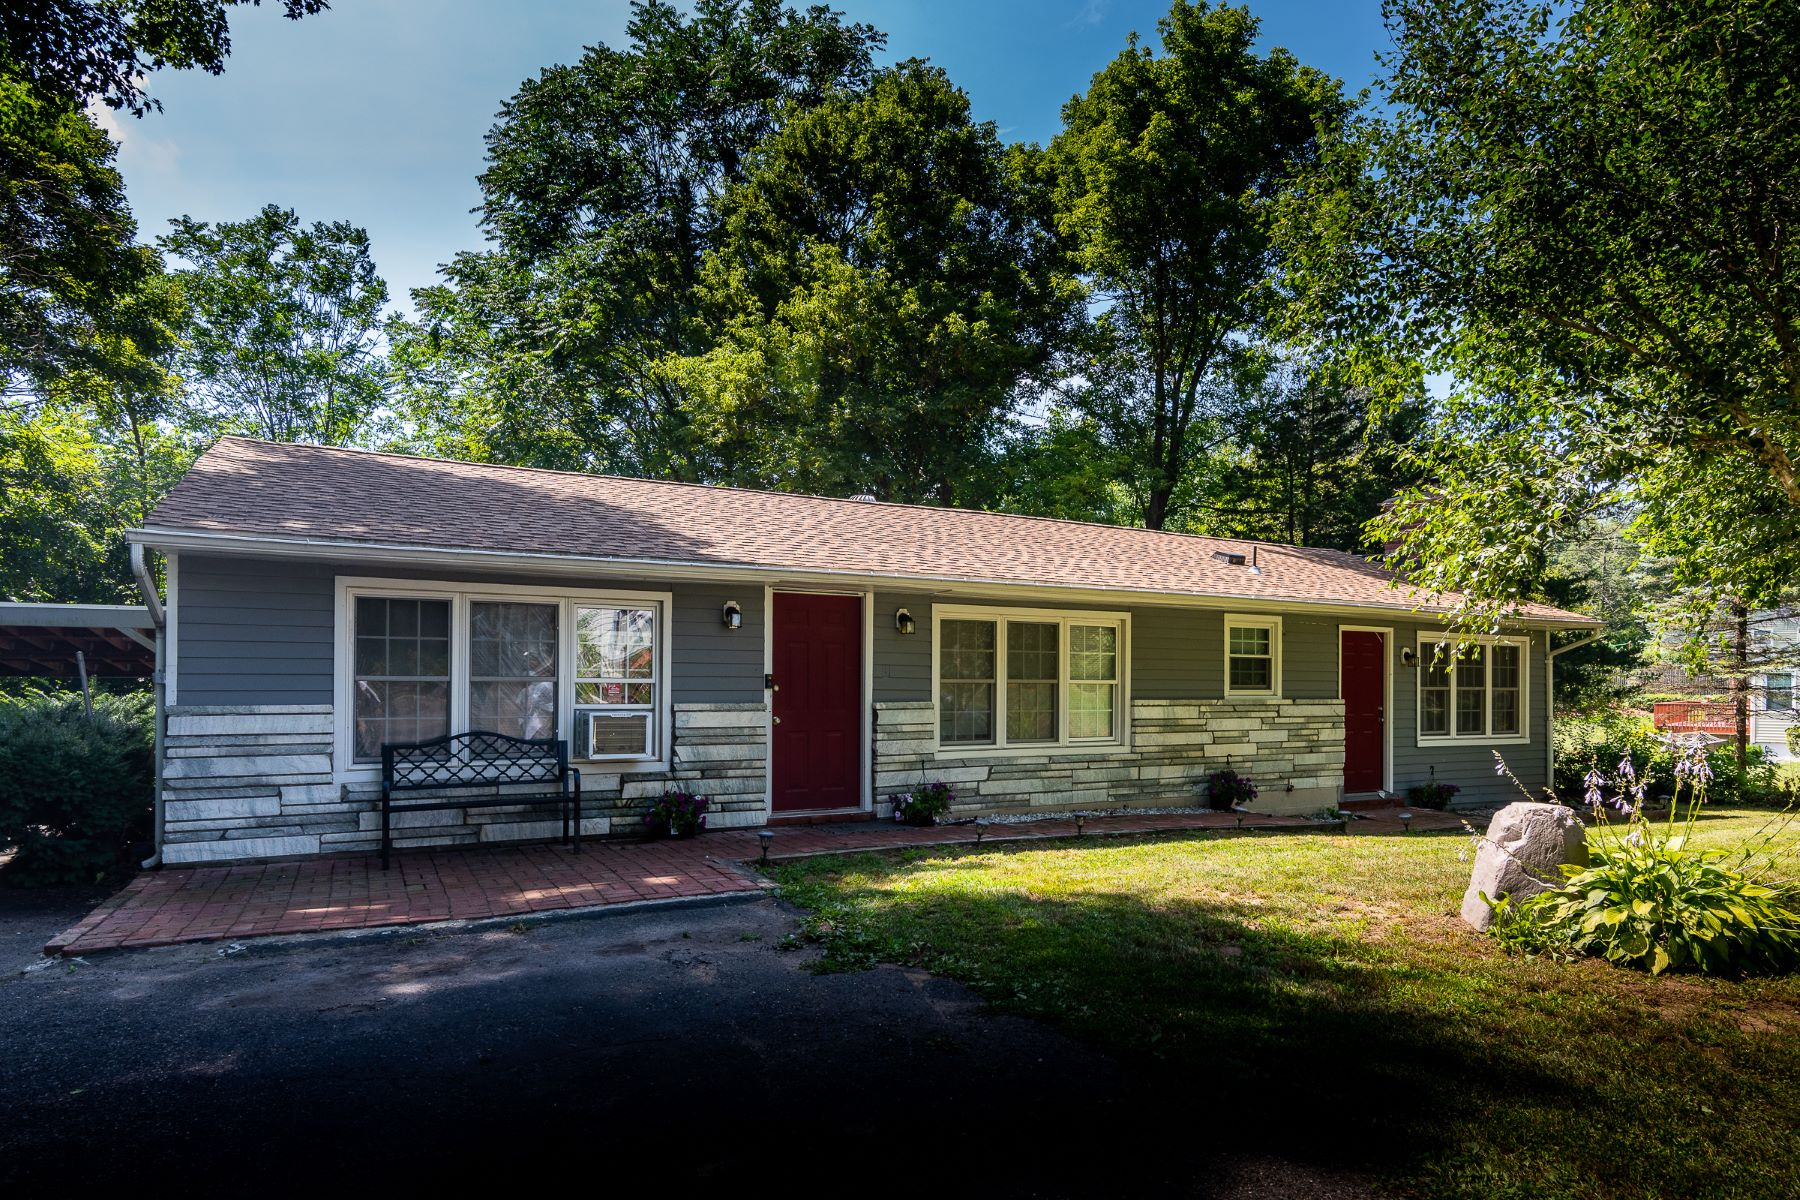 Single Family Homes for Sale at Perfect starter home 35 River Road New Milford, Connecticut 06776 United States